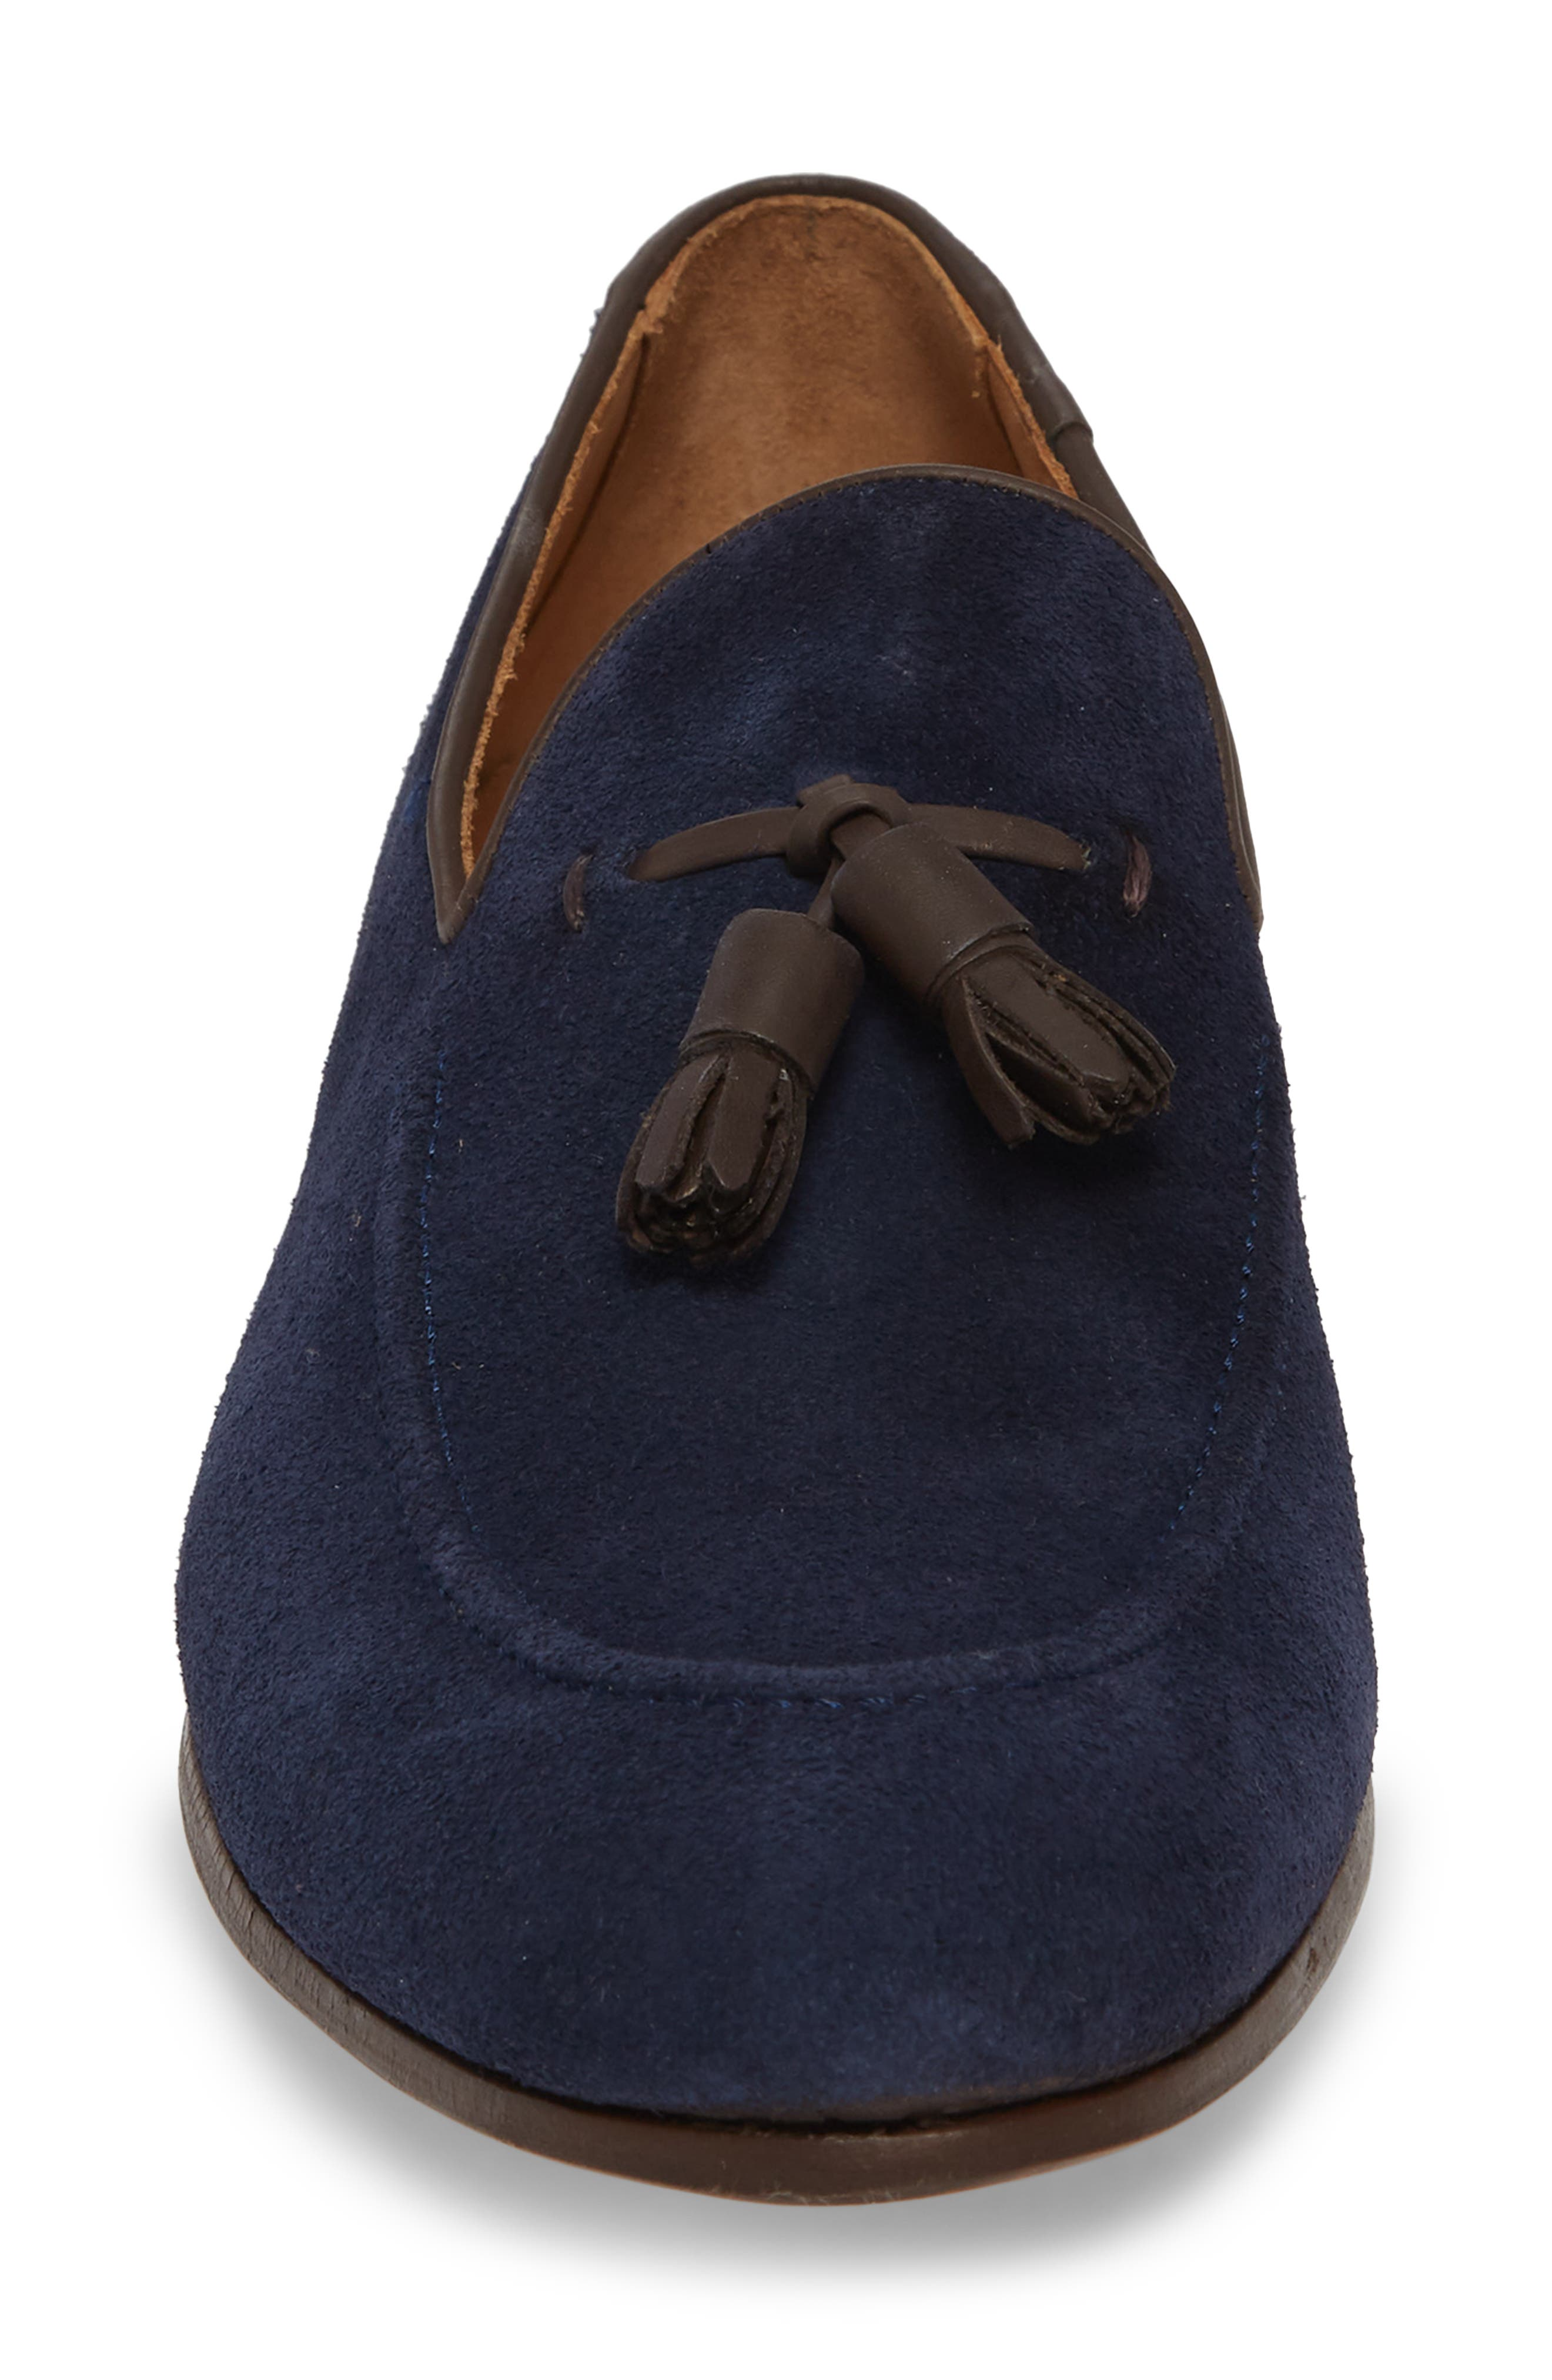 Ario Tassel Loafer,                             Alternate thumbnail 4, color,                             NAVY SUEDE